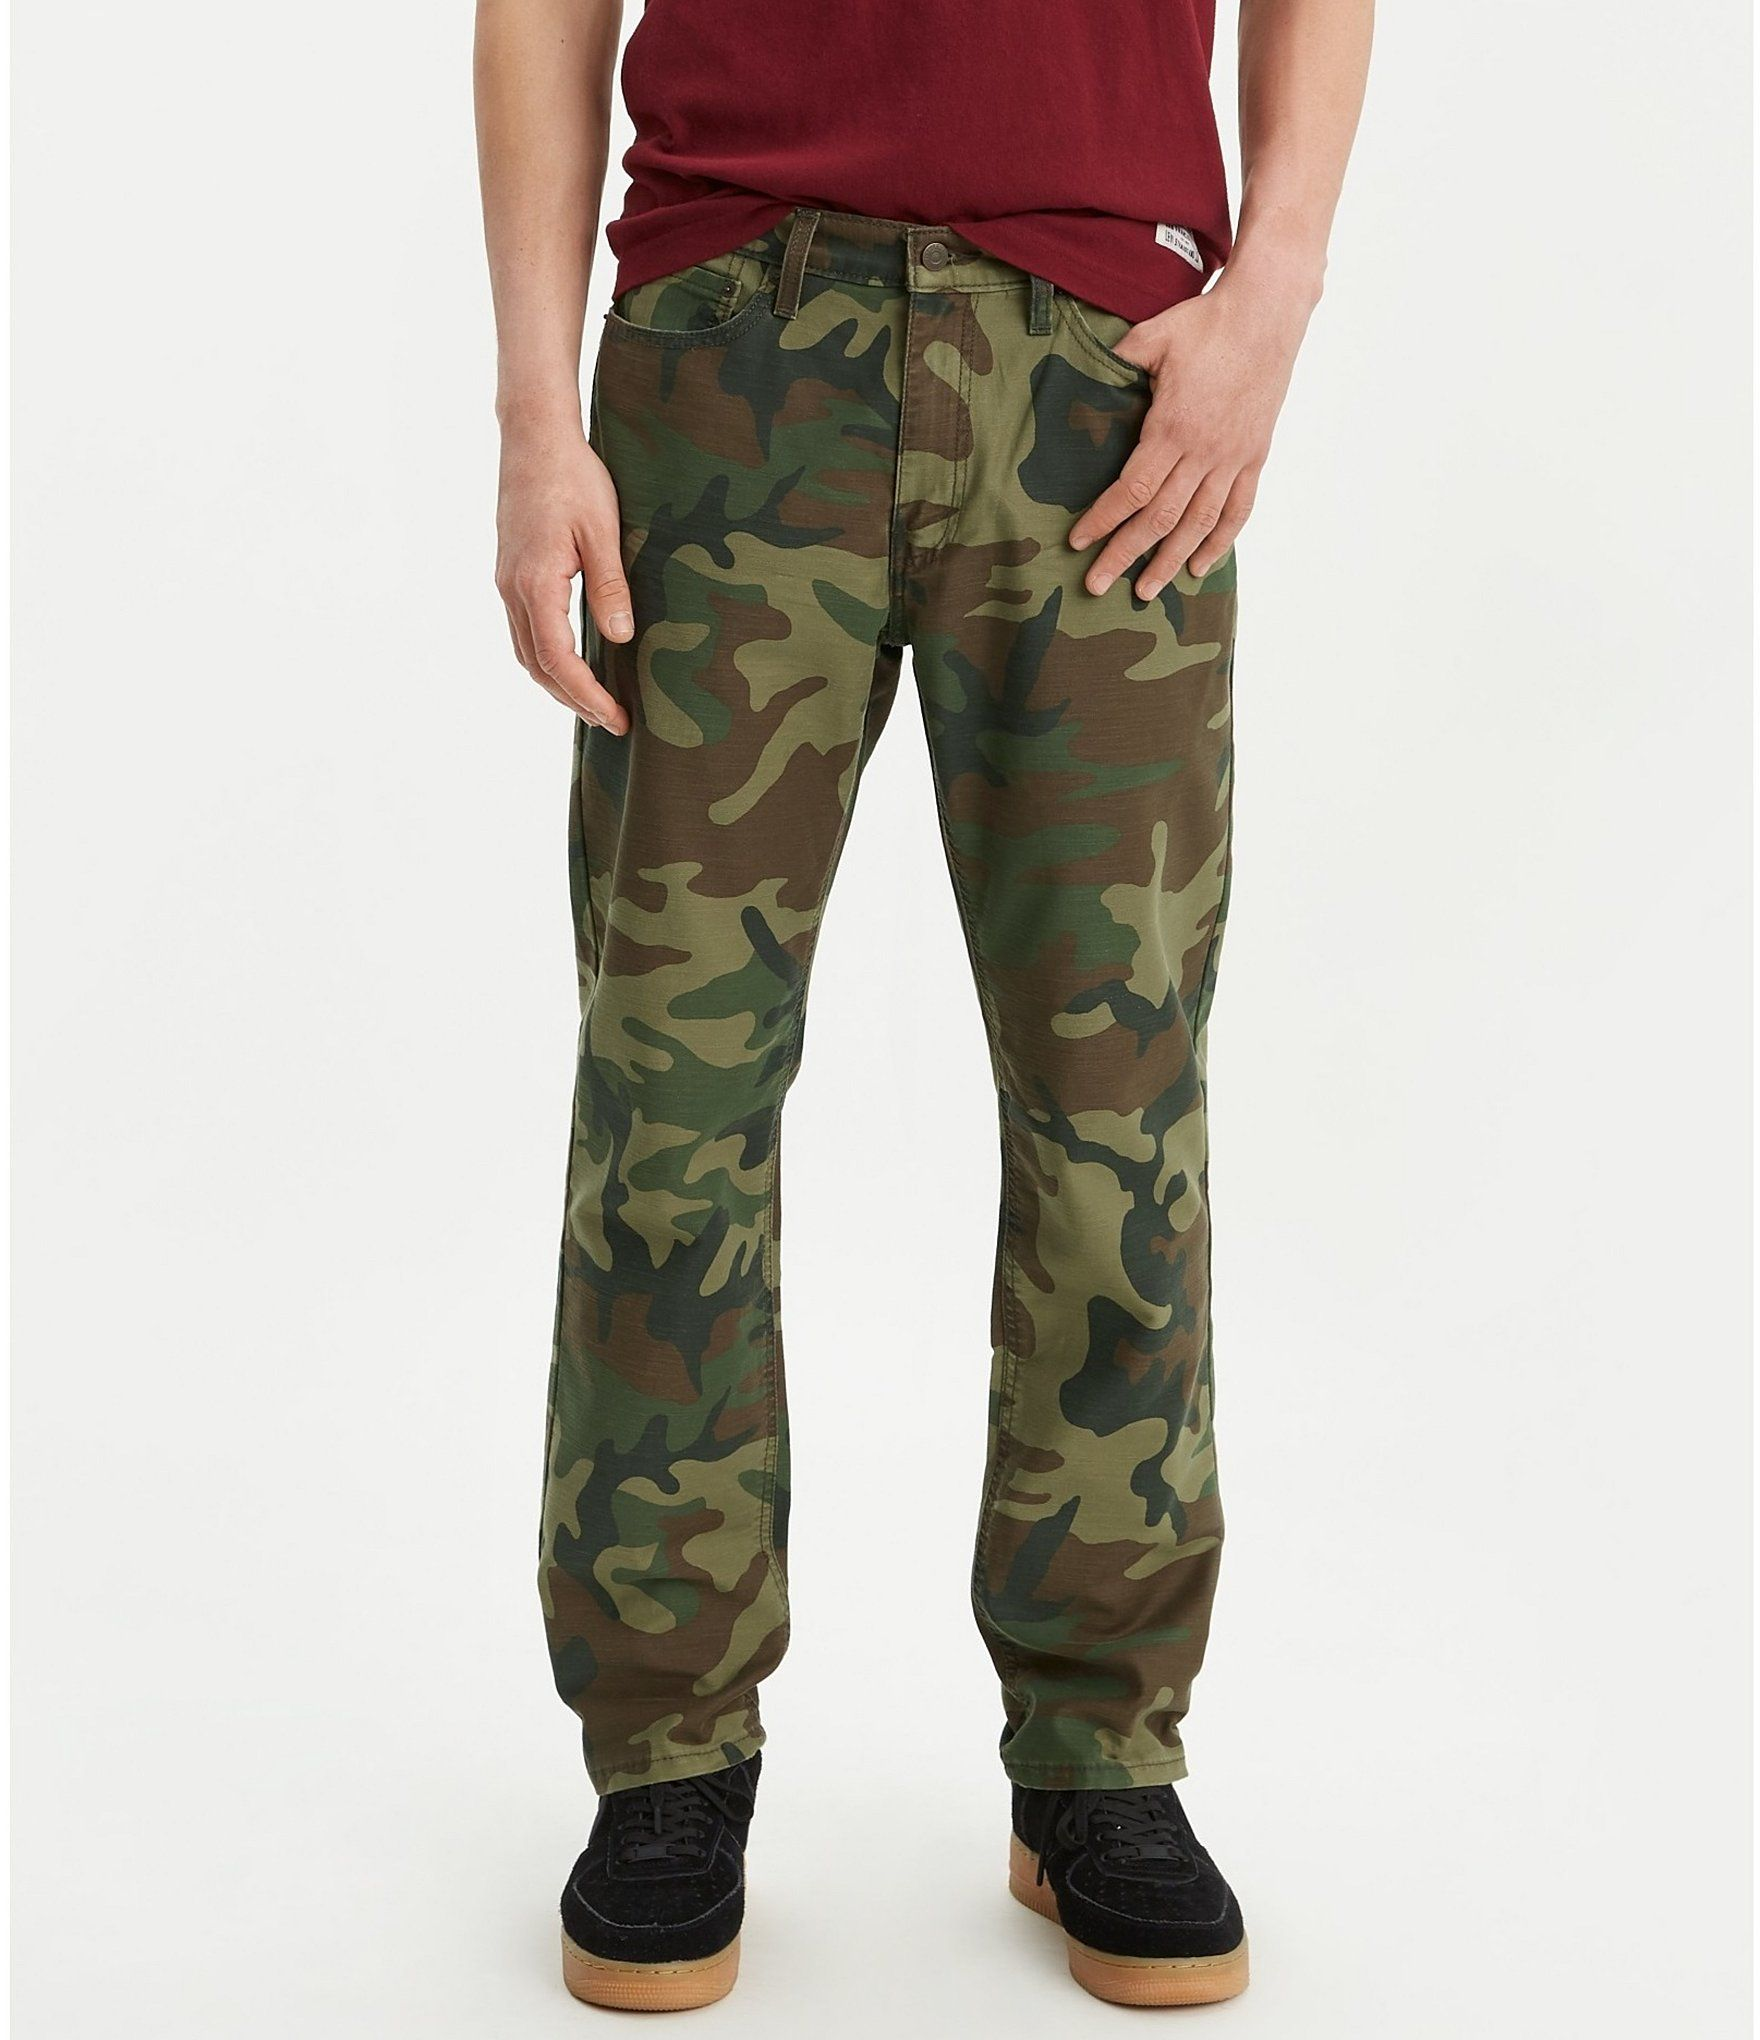 Levis big tall 541 athleticfit camo jeans 42 36 in